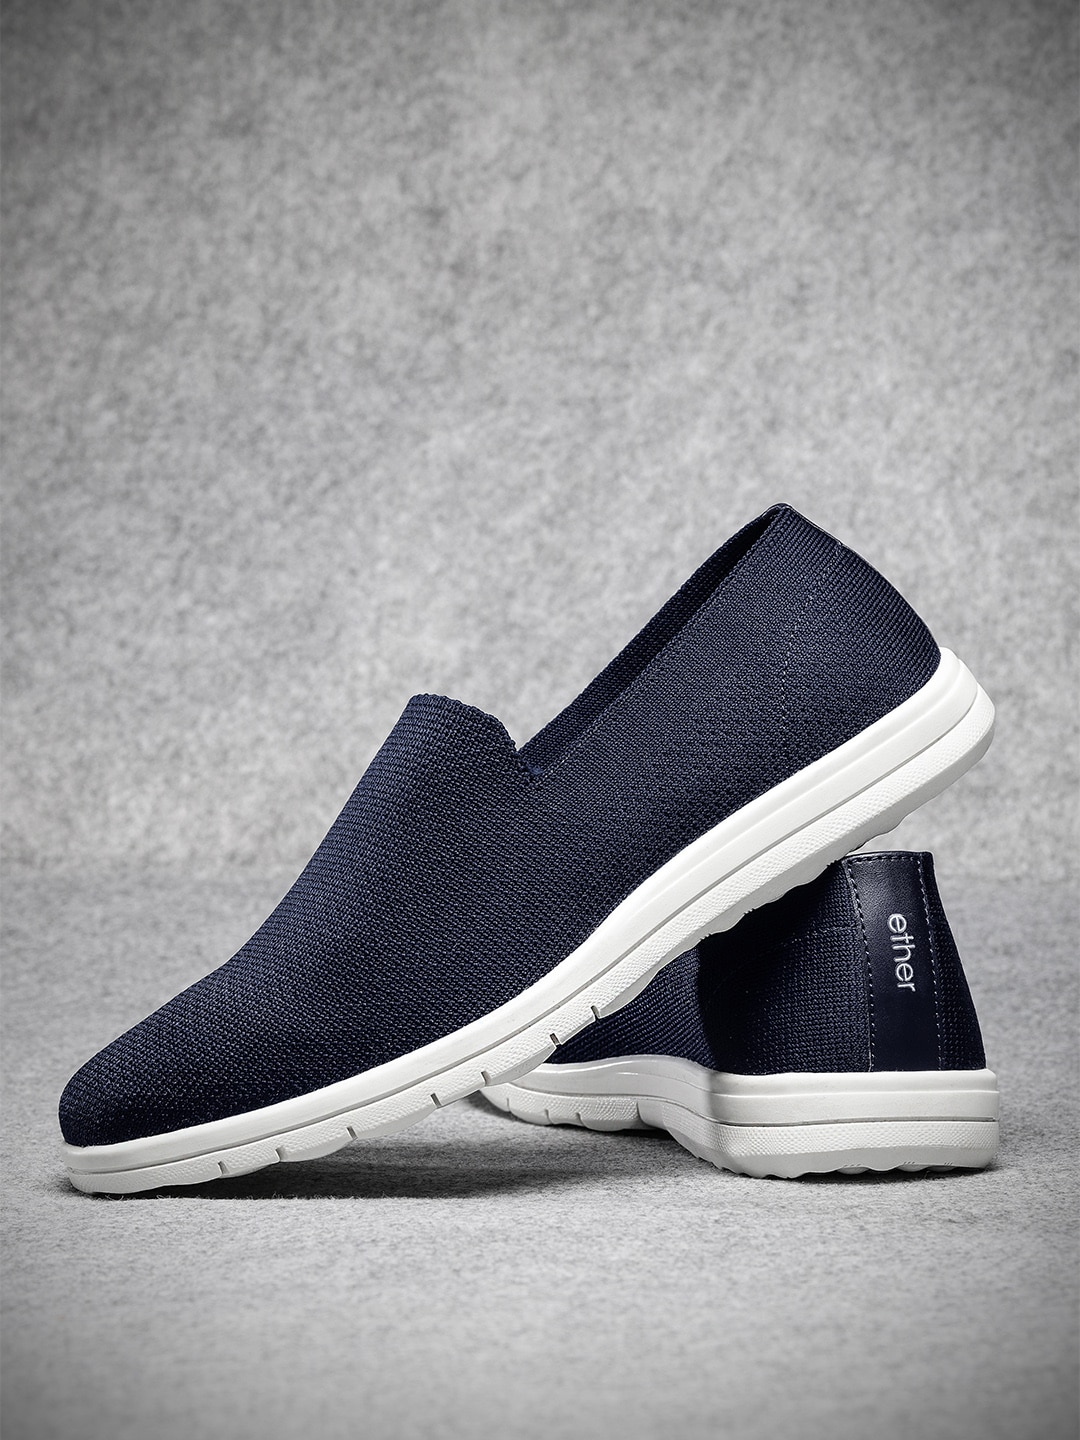 2ca99e699 Shoes for Men - Buy Mens Shoes Online at Best Price